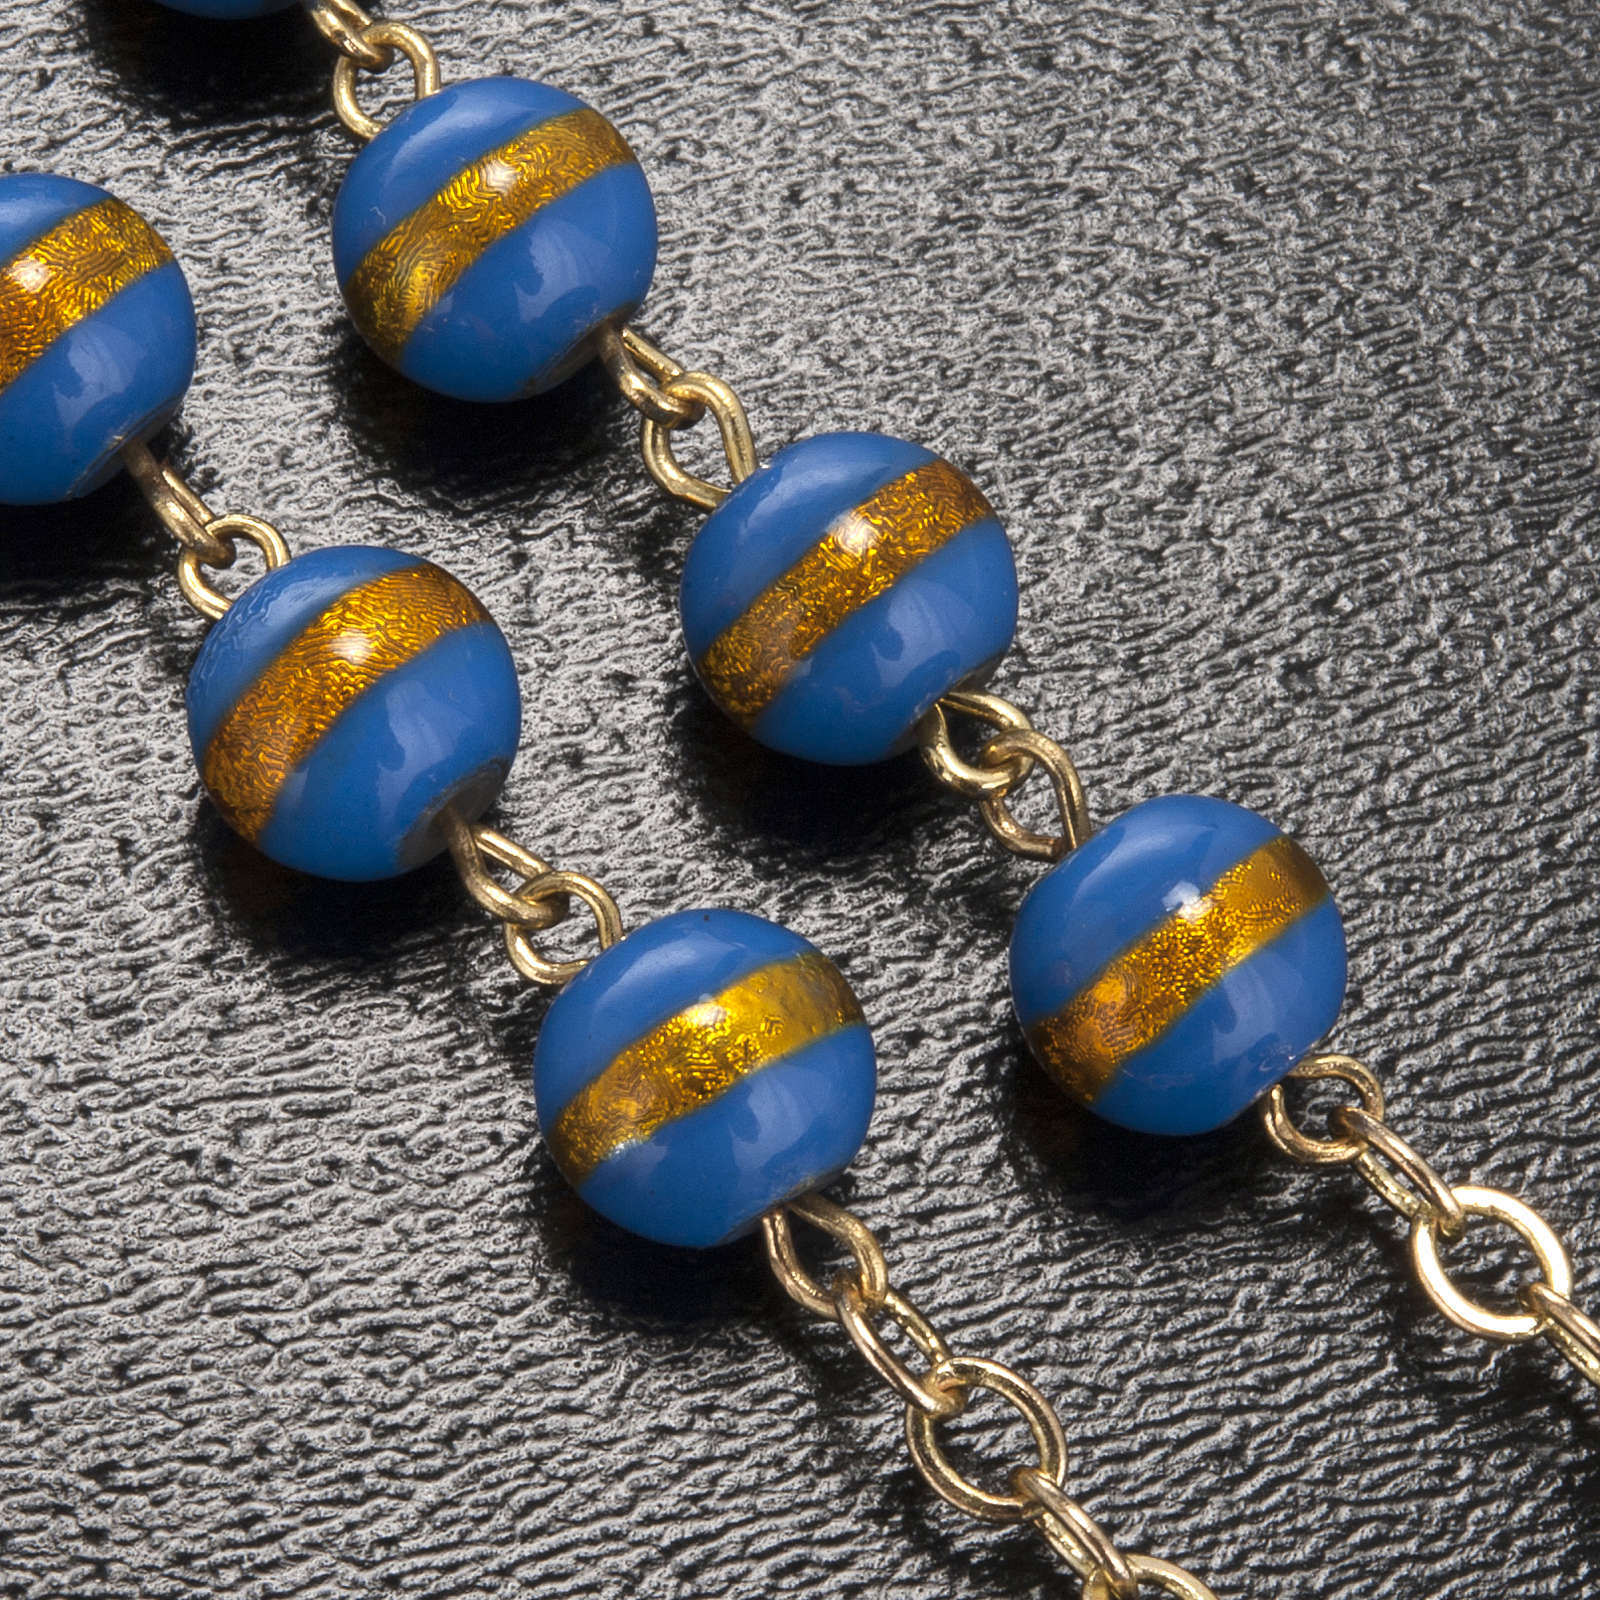 Ghirelli rosary Lourdes Grotto, blue-yellow 7mm 4